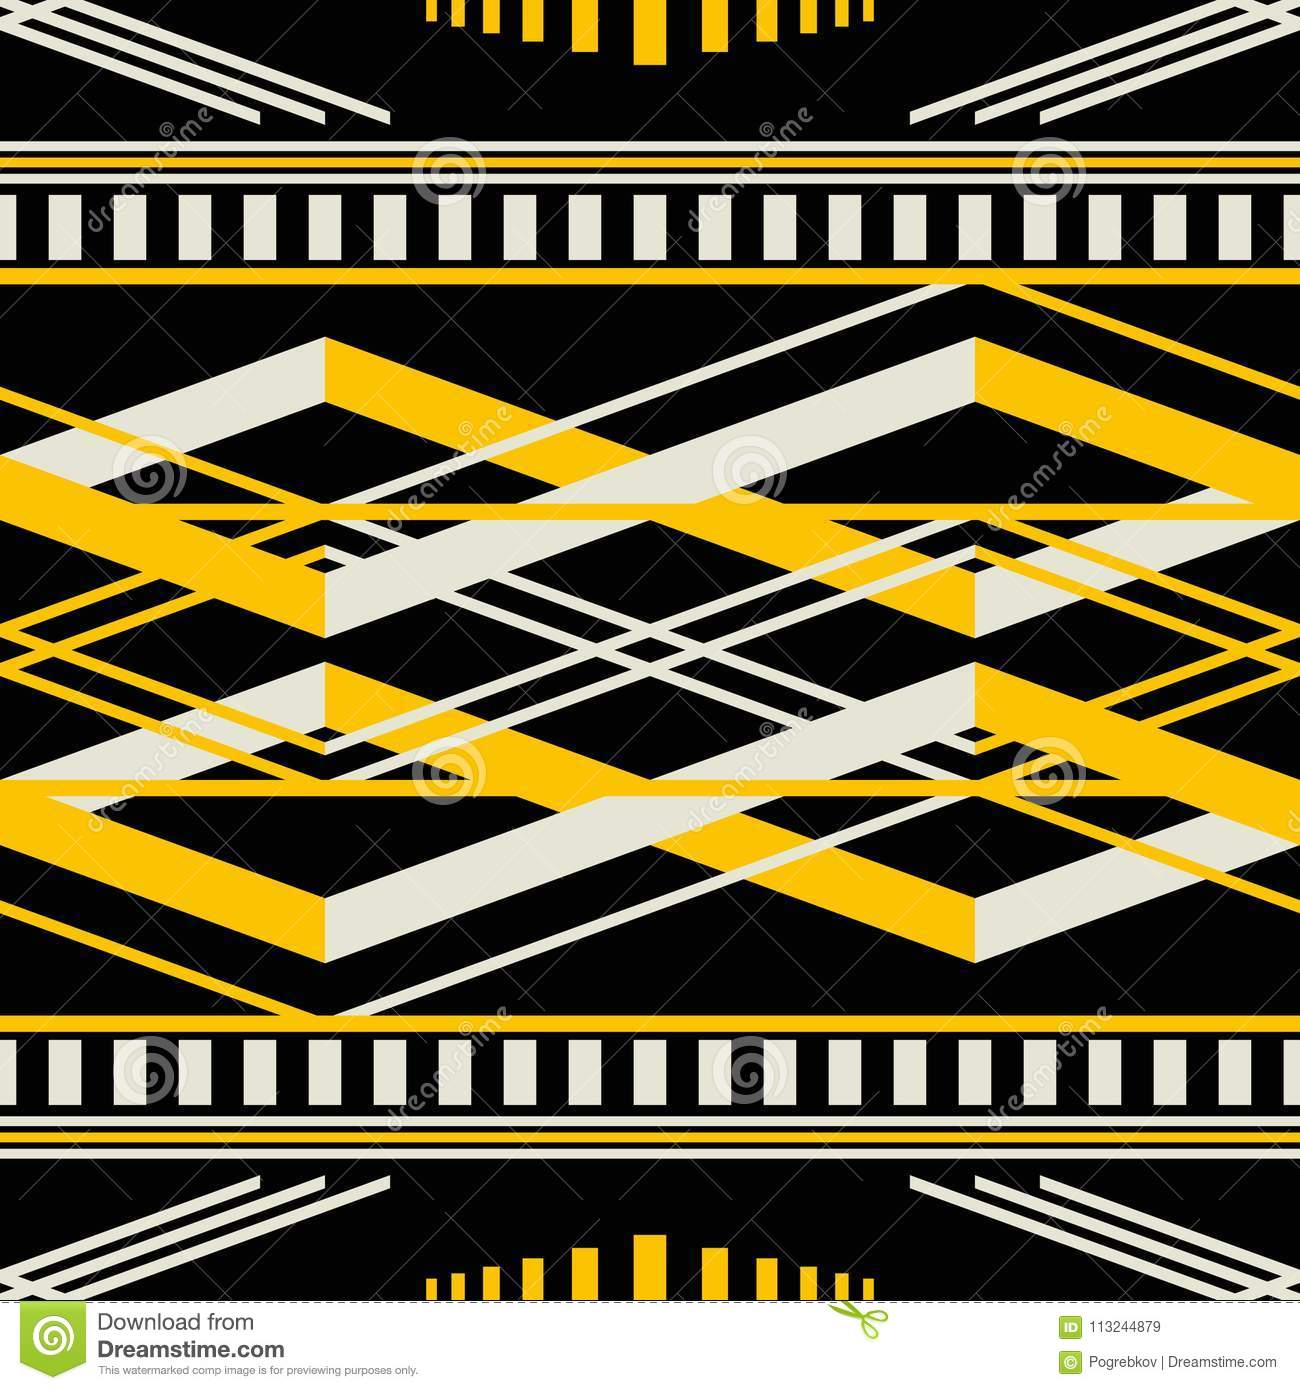 Download Seamless Geometric Retro Pattern In Black Yellow Dusty White C Stock Vector